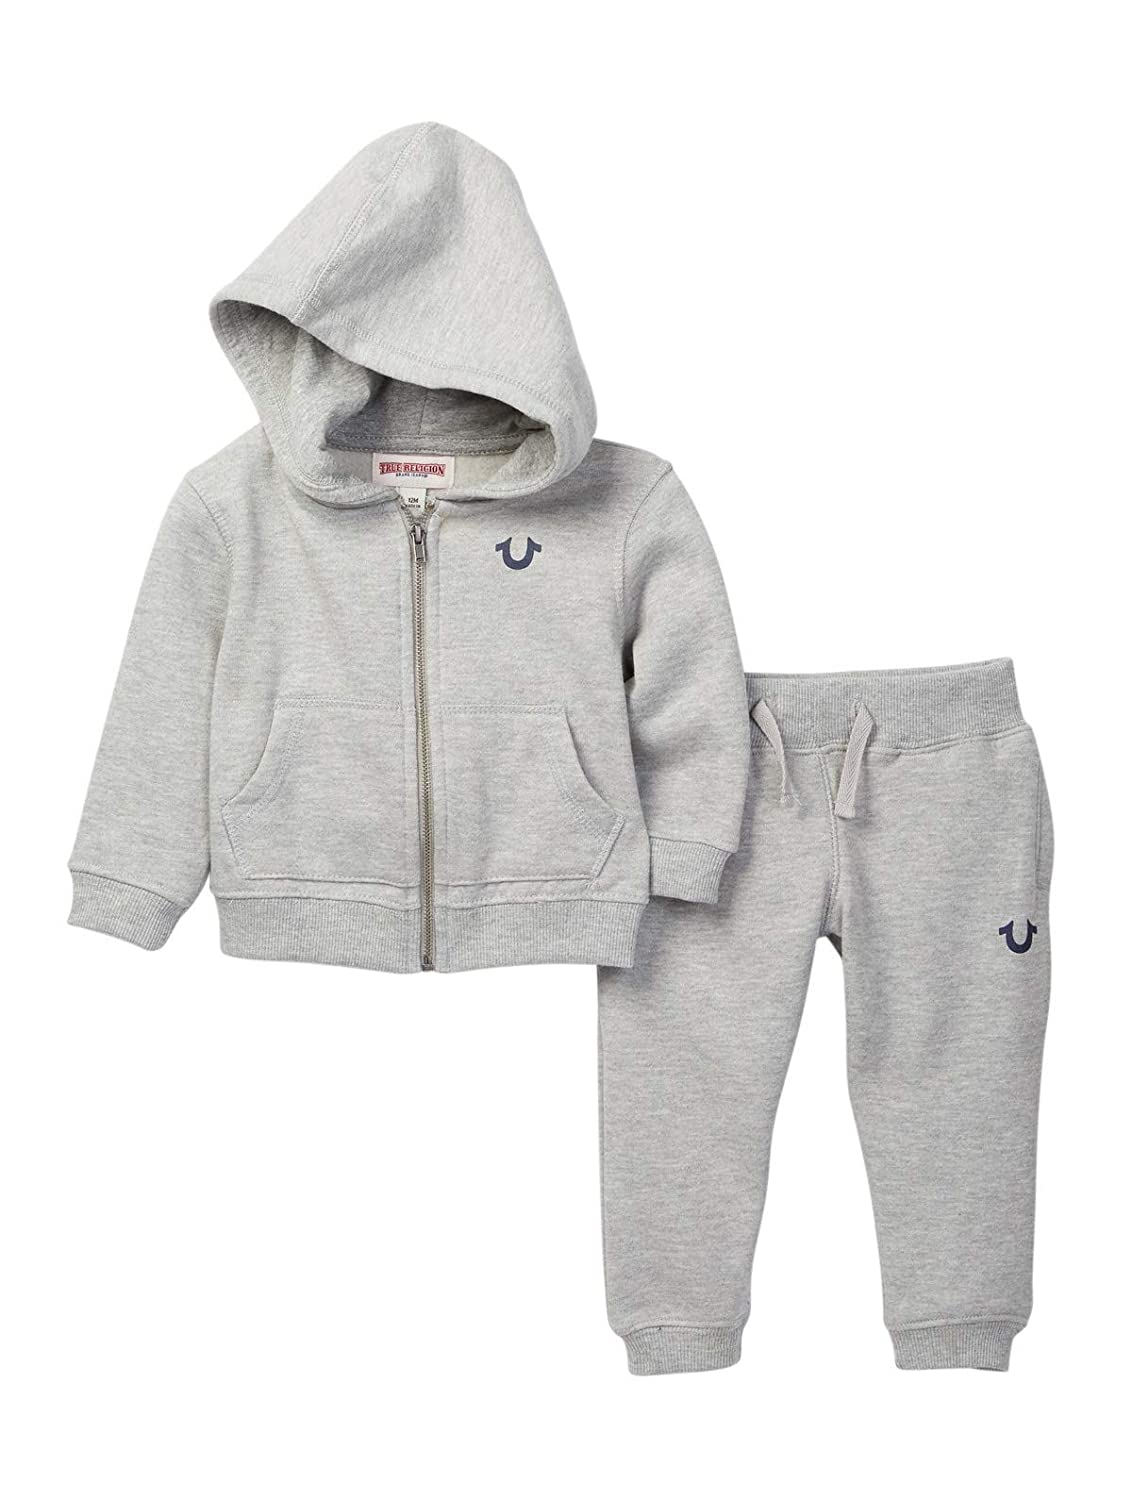 c203c719d Amazon.com  True Religion Baby and Toddler Boy s Hoodie   Sweatpants Set   Clothing